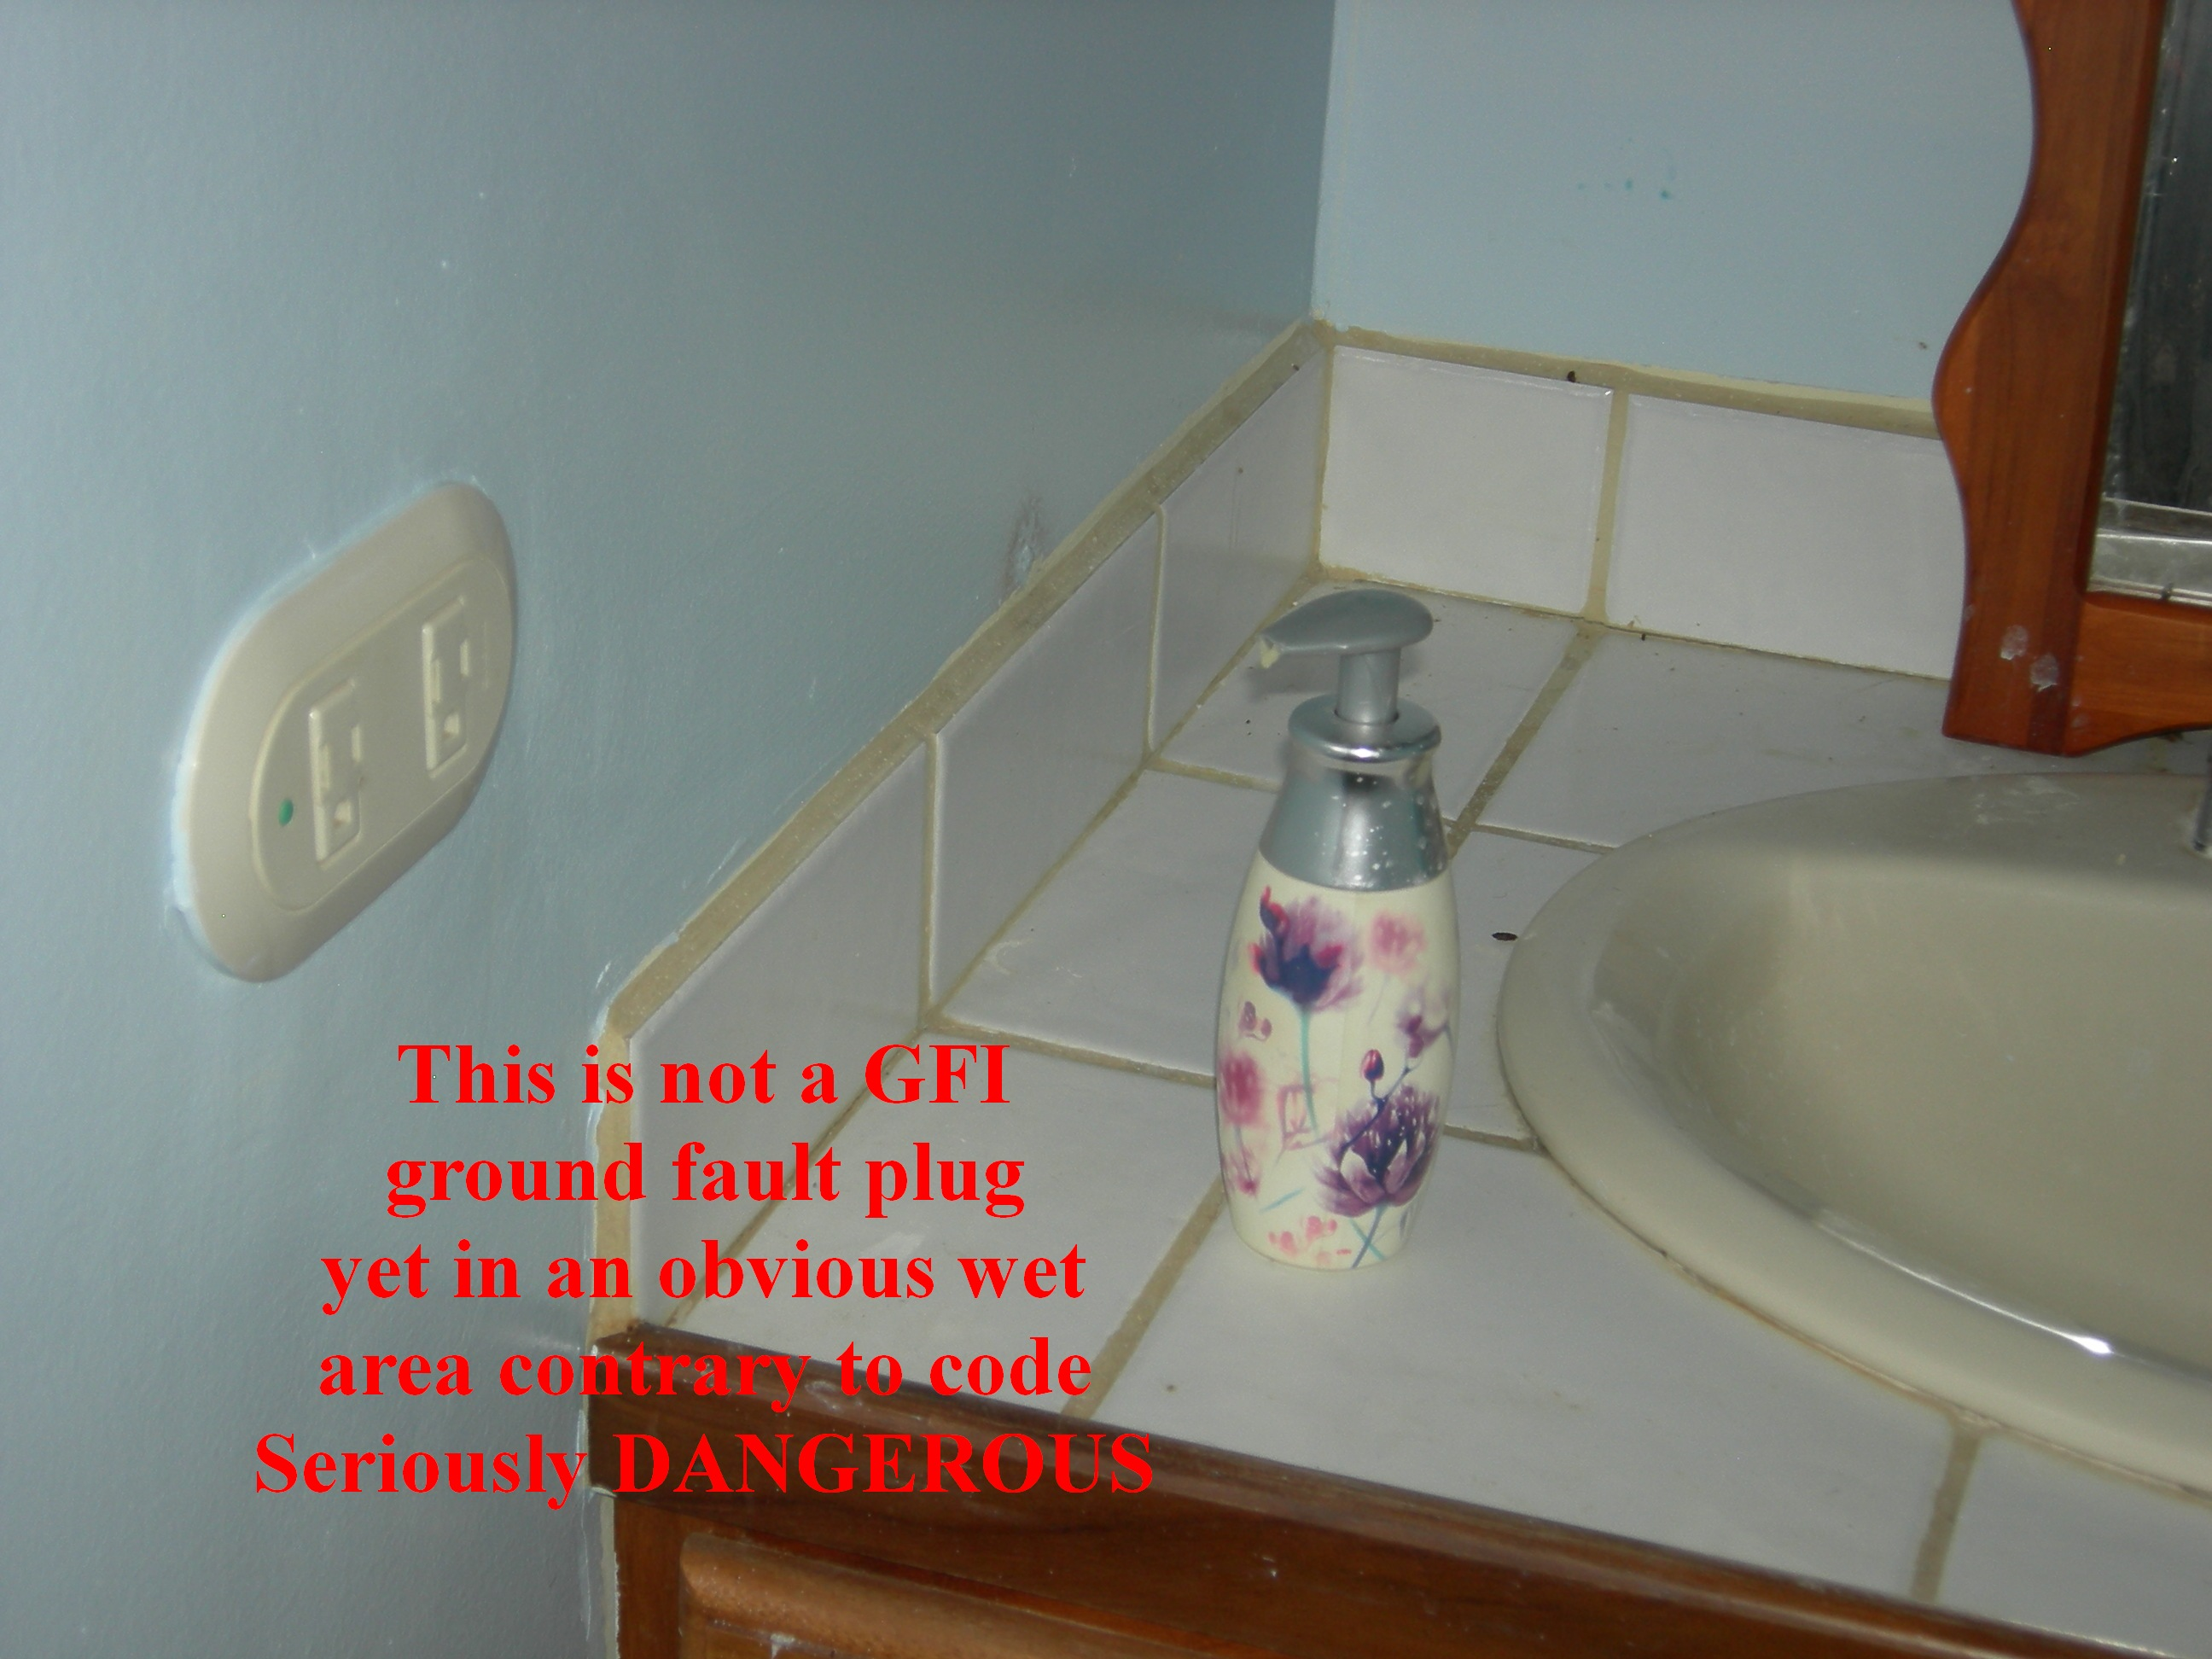 No GFI on plug beside a sink - No GFI alado de lavo de manos, very dangerous electrical plug, muy peligroso electricidad toma